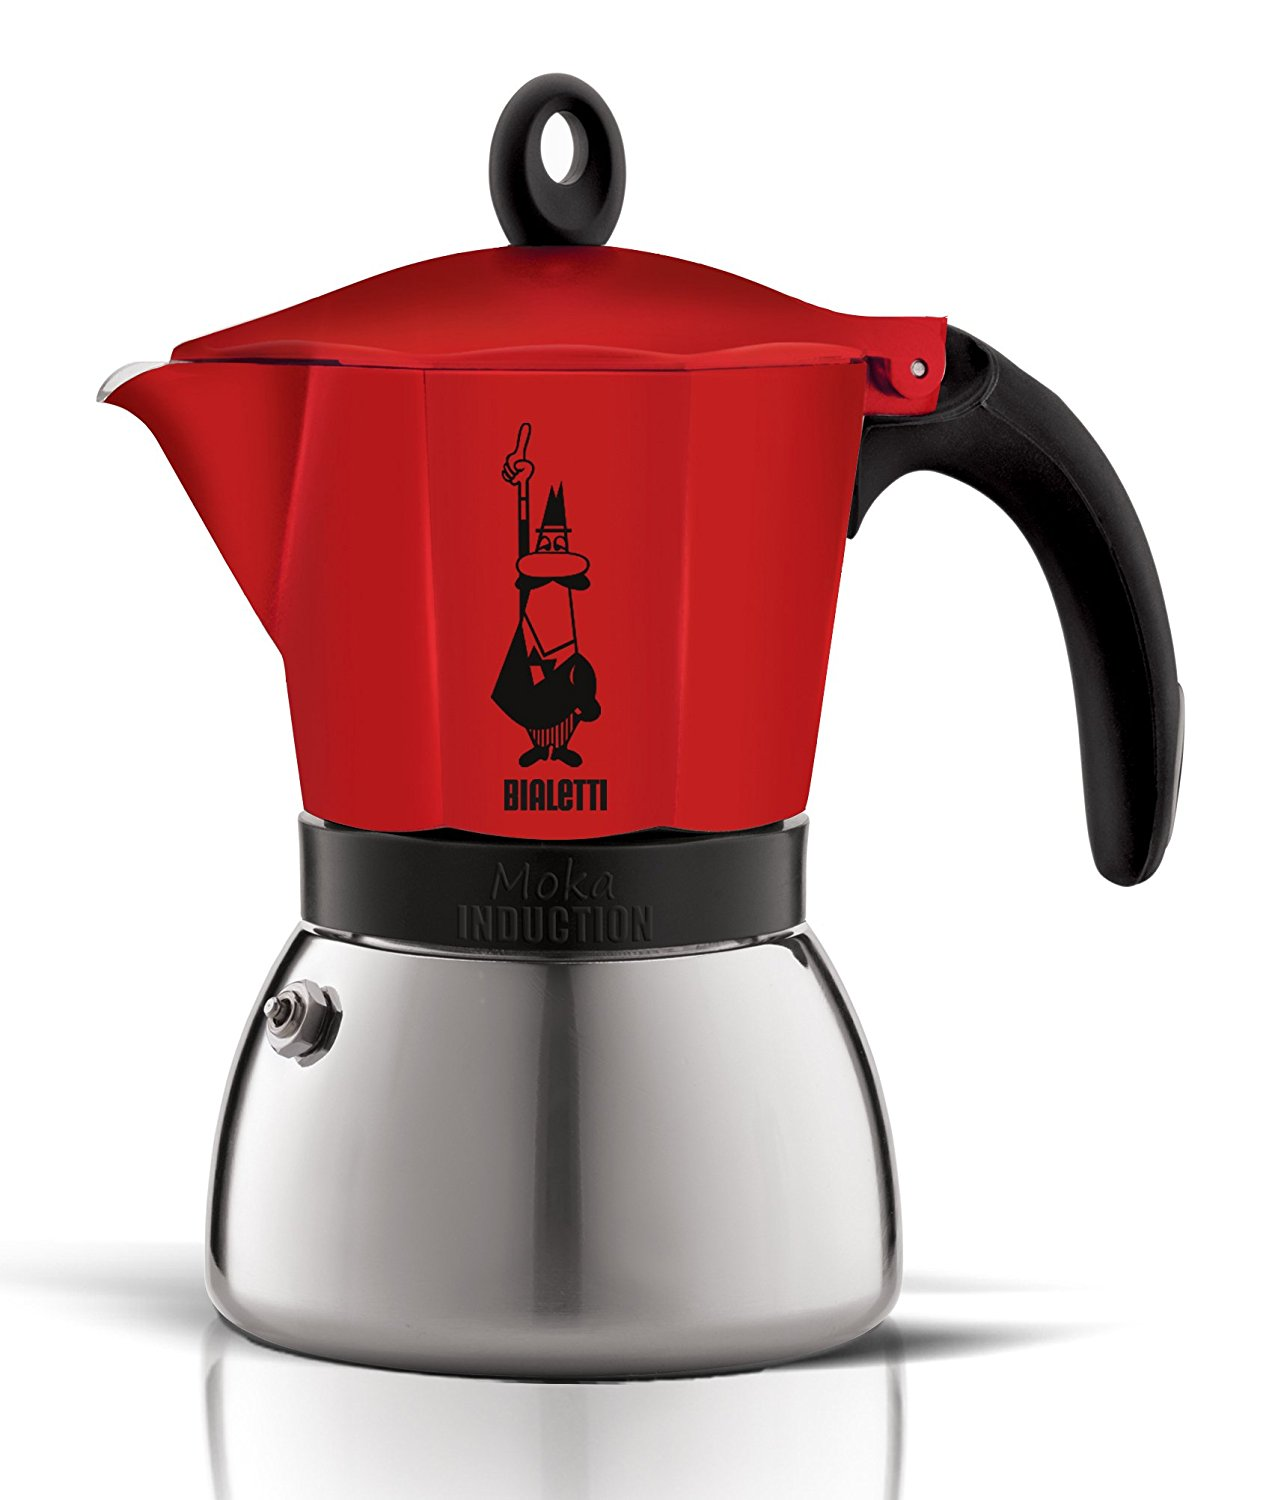 Bialetti Moka Induction 3